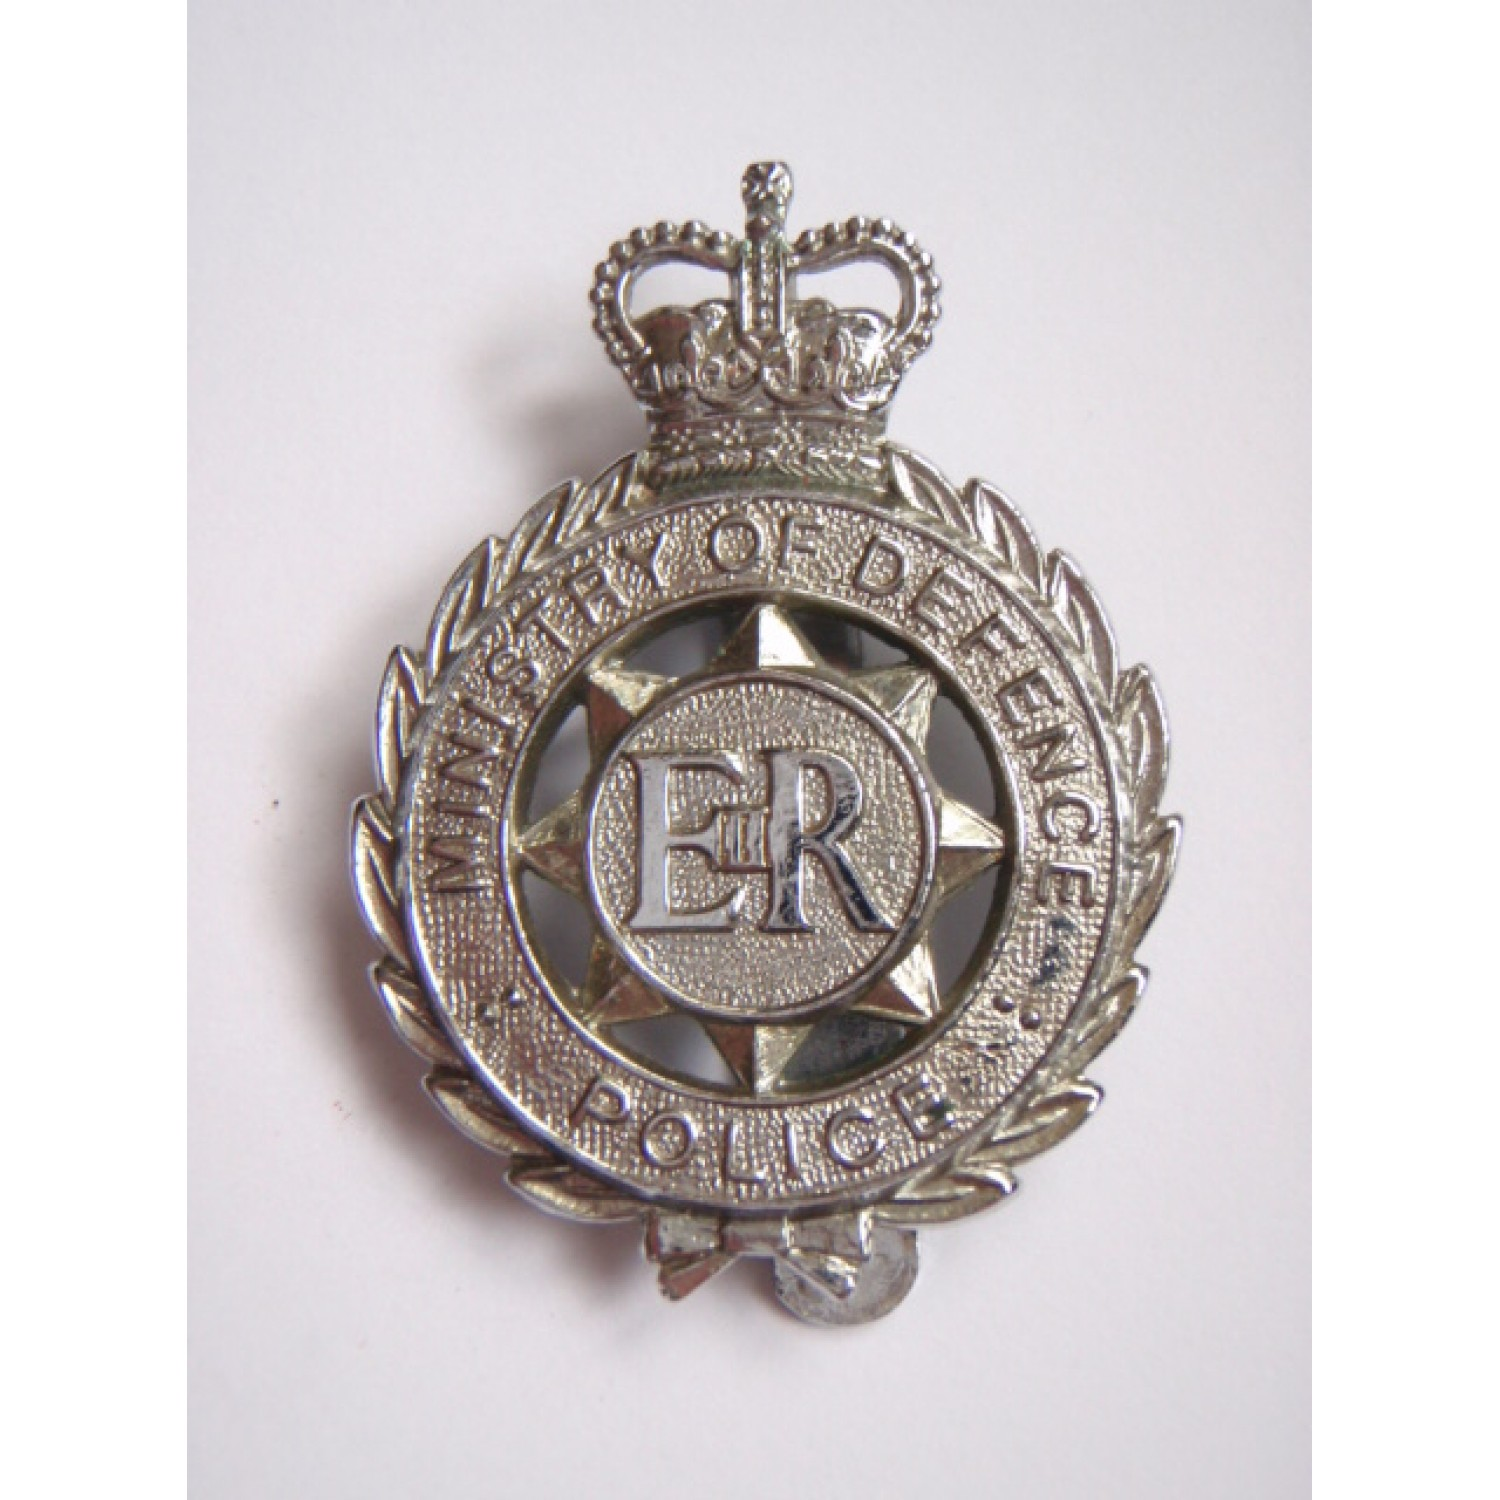 online birmingham crown city pb shop collectables police pendant s badge king badges cap